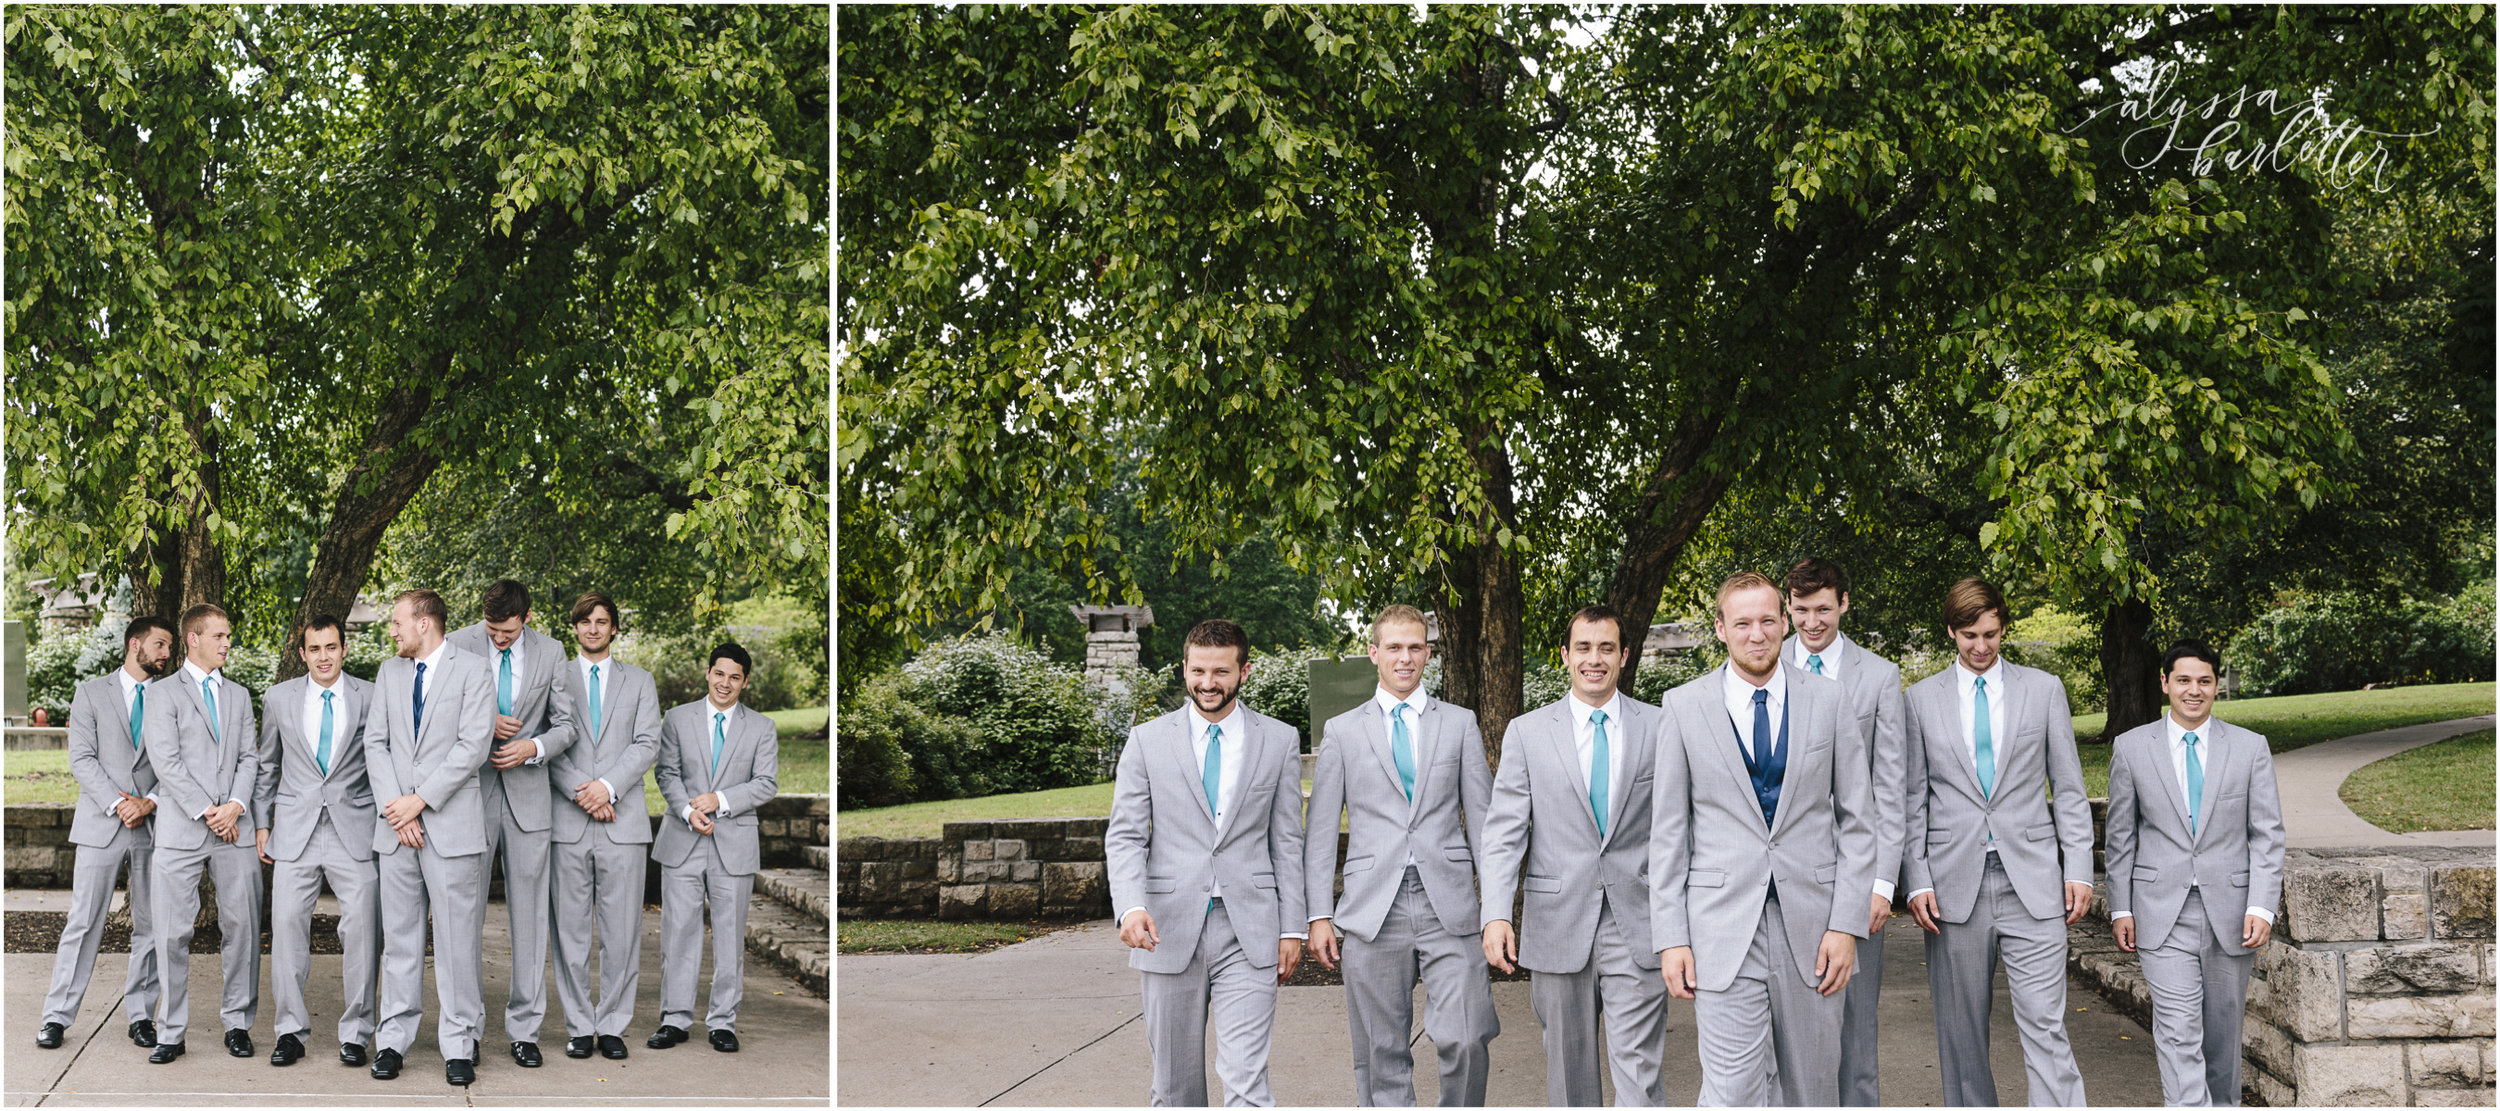 kansas city wedding photographer groomsmen groom grey suits loose park